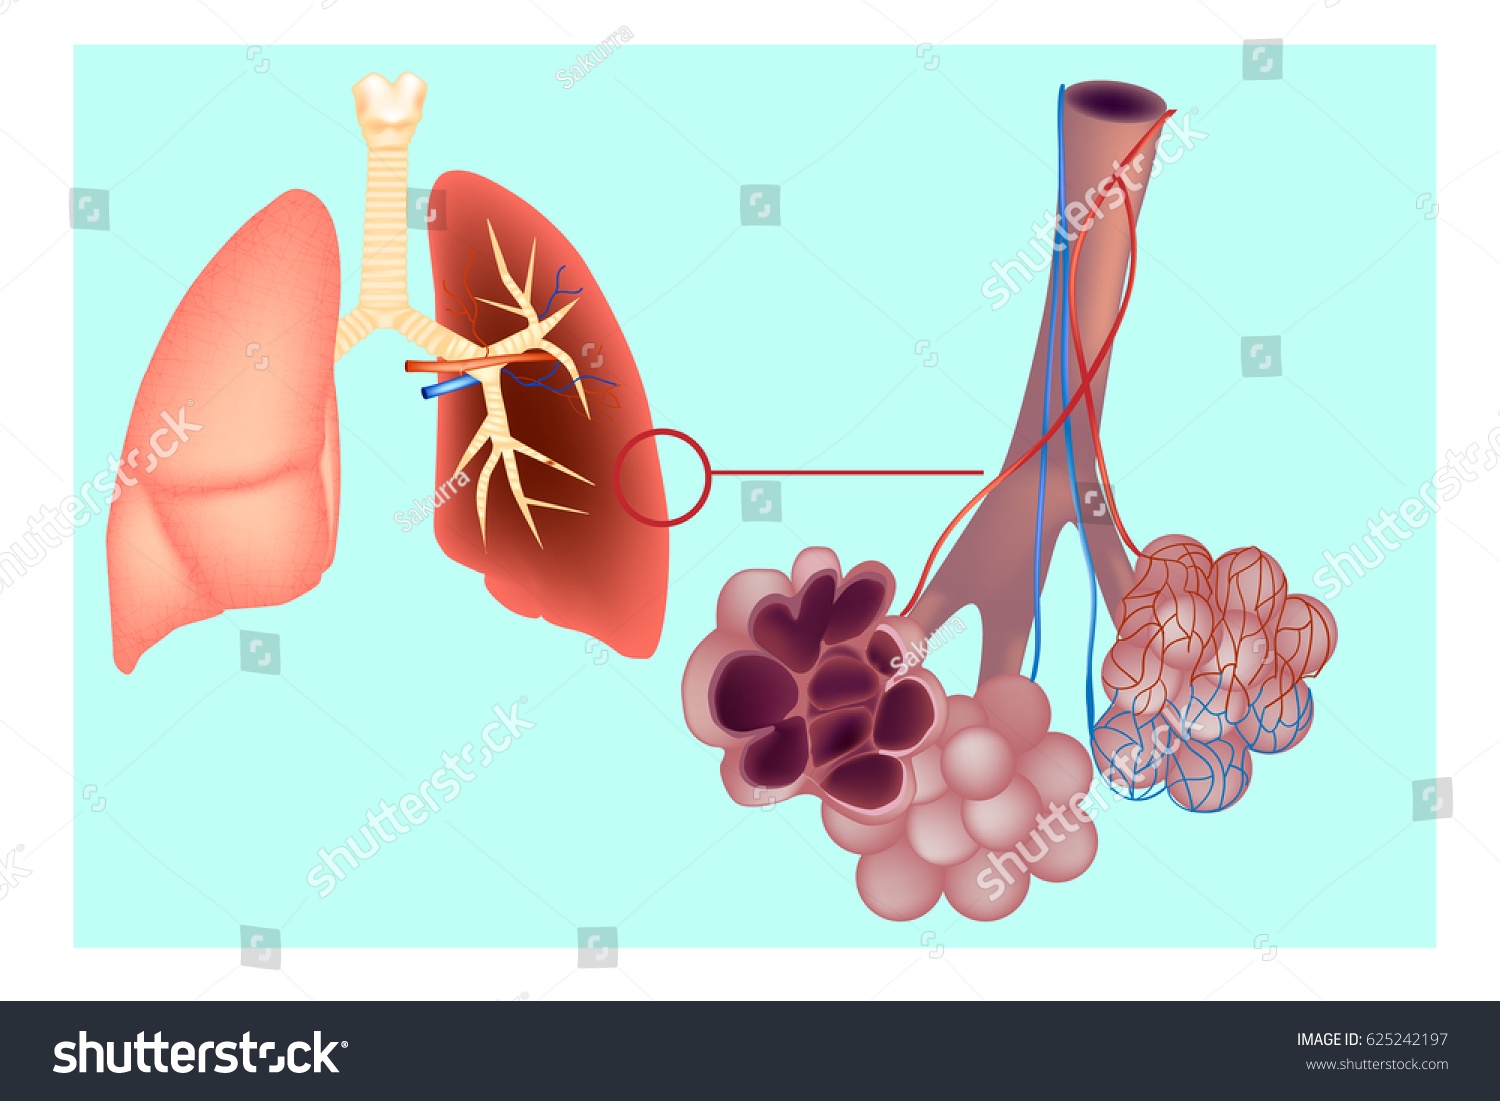 Diagram Pulmonary Alveolus Air Sacs Lung Stock Vector Royalty Free